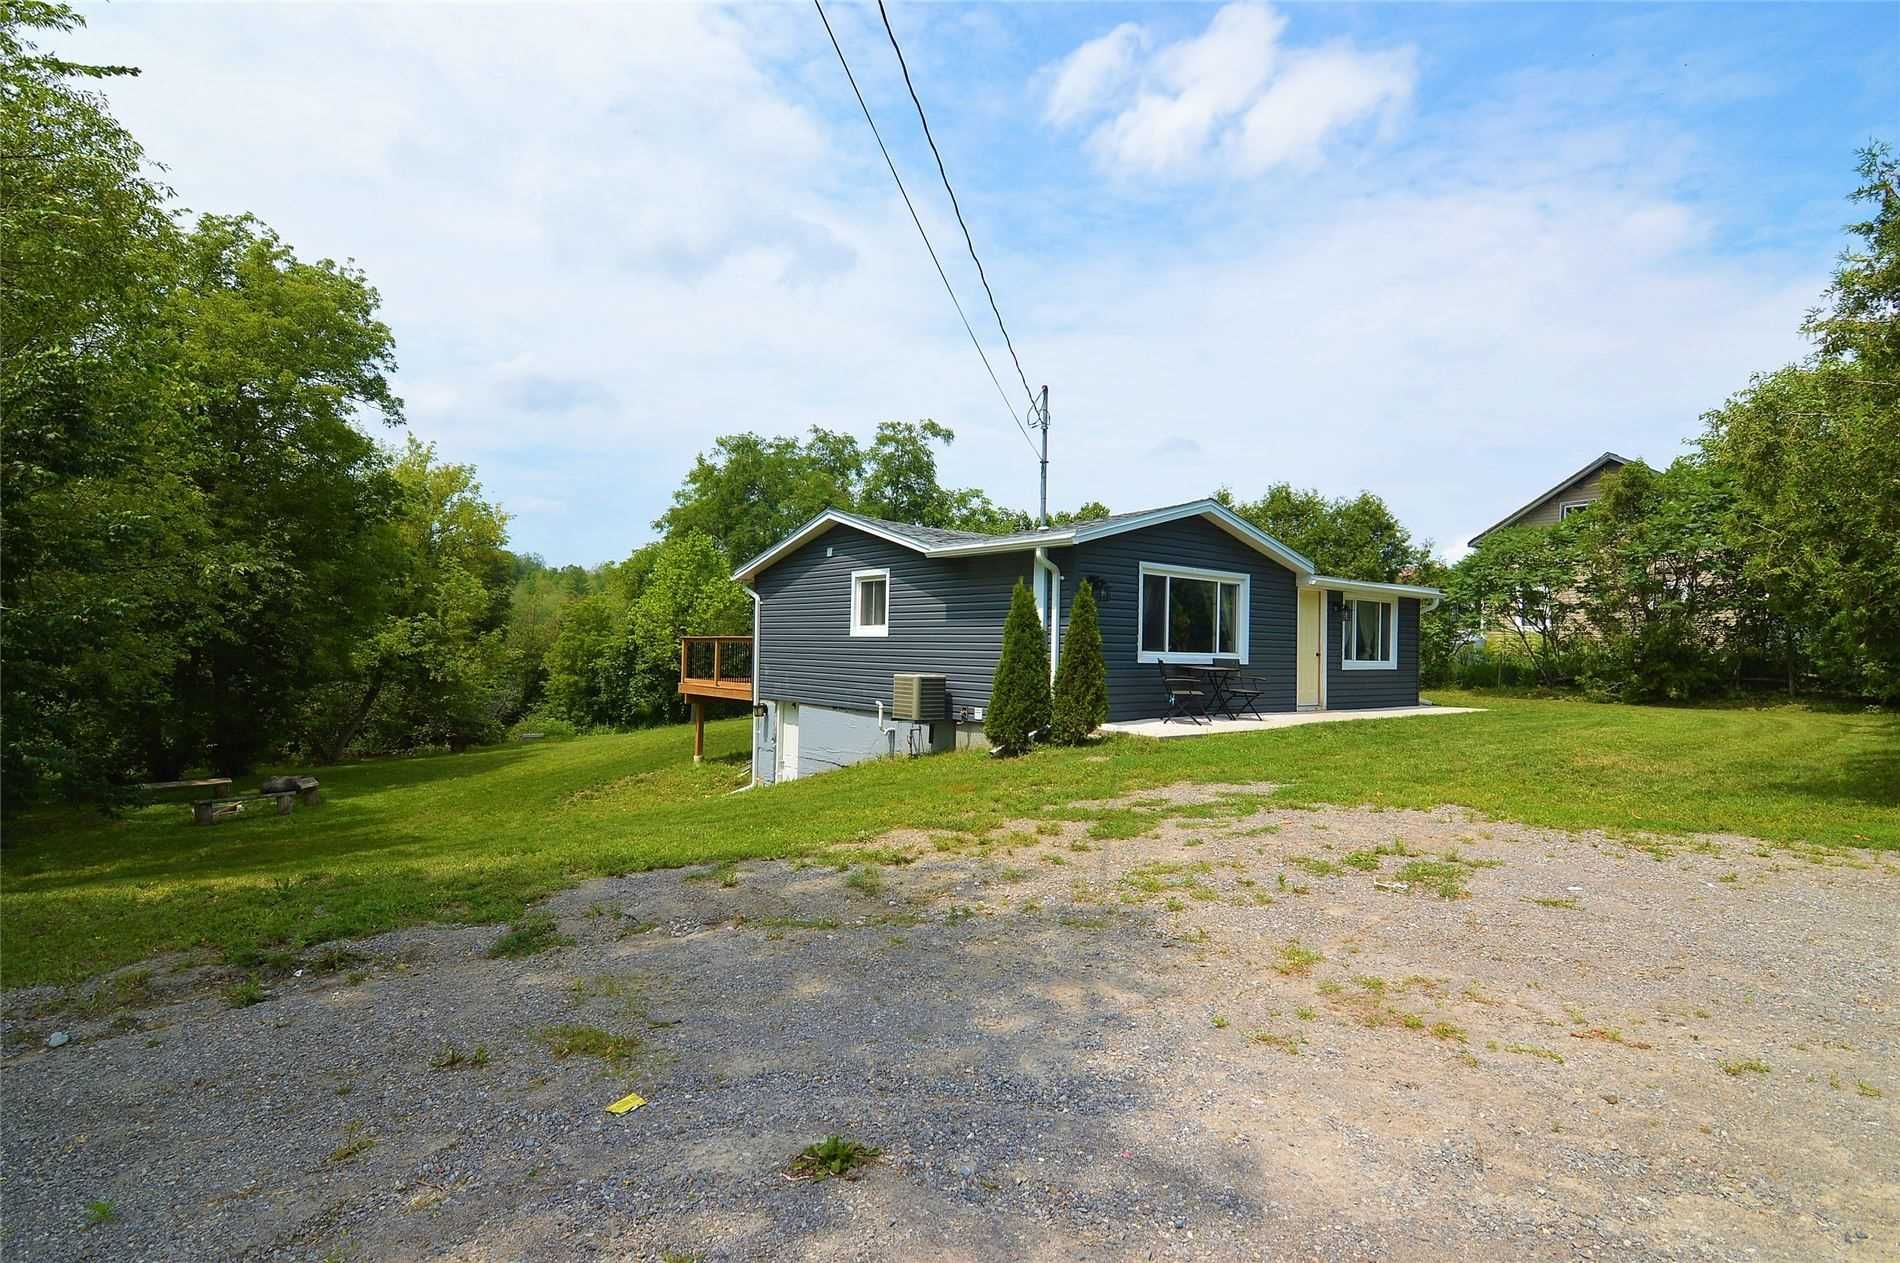 Main Photo: 5142 County 25 Road in Trent Hills: Warkworth House (Bungalow) for sale : MLS®# X5309240